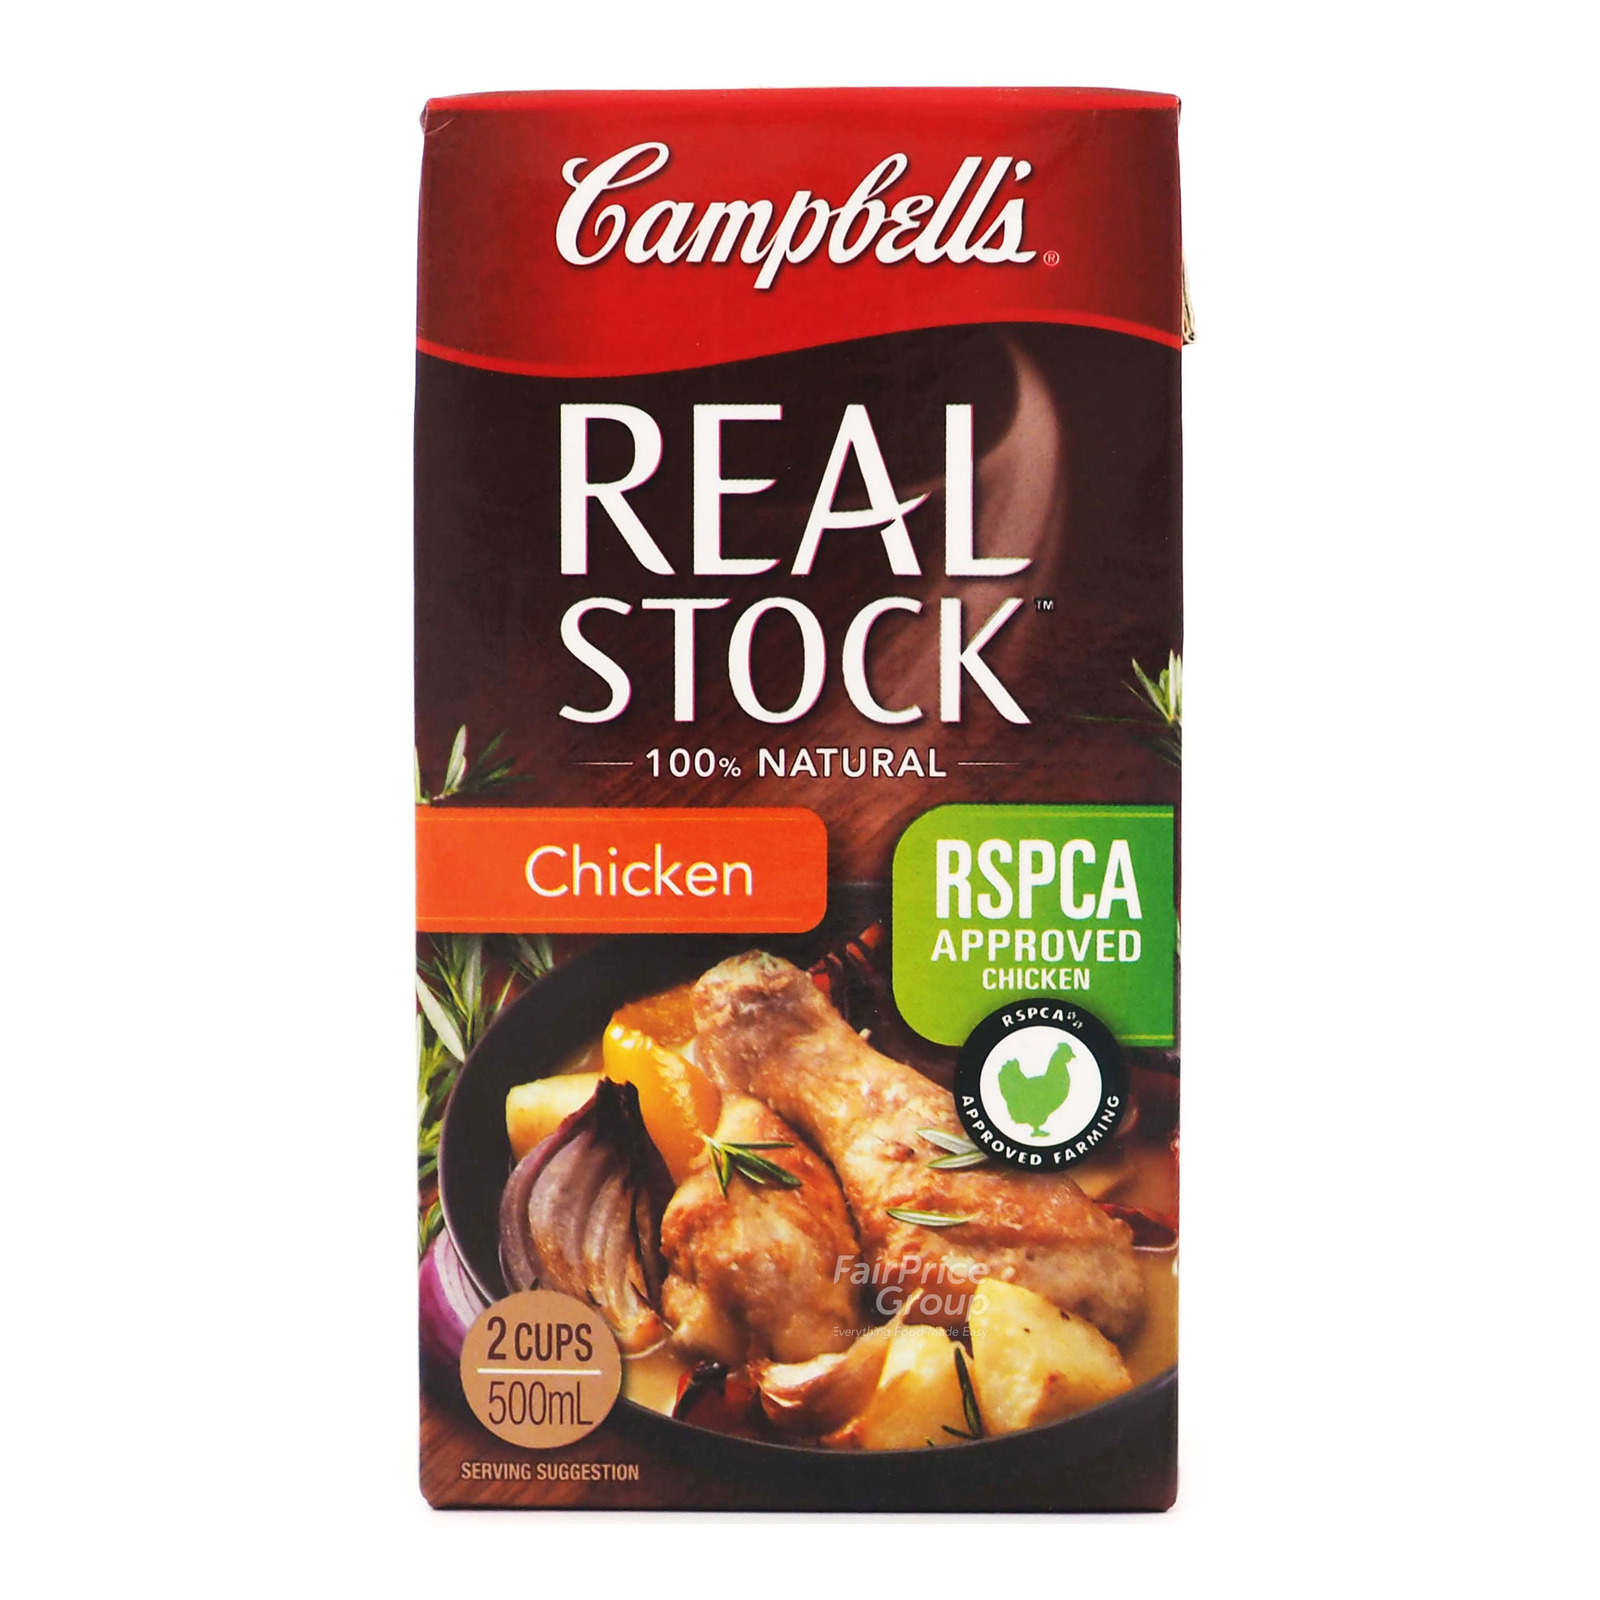 Campbell's 100% Natural Real Stock - Chicken